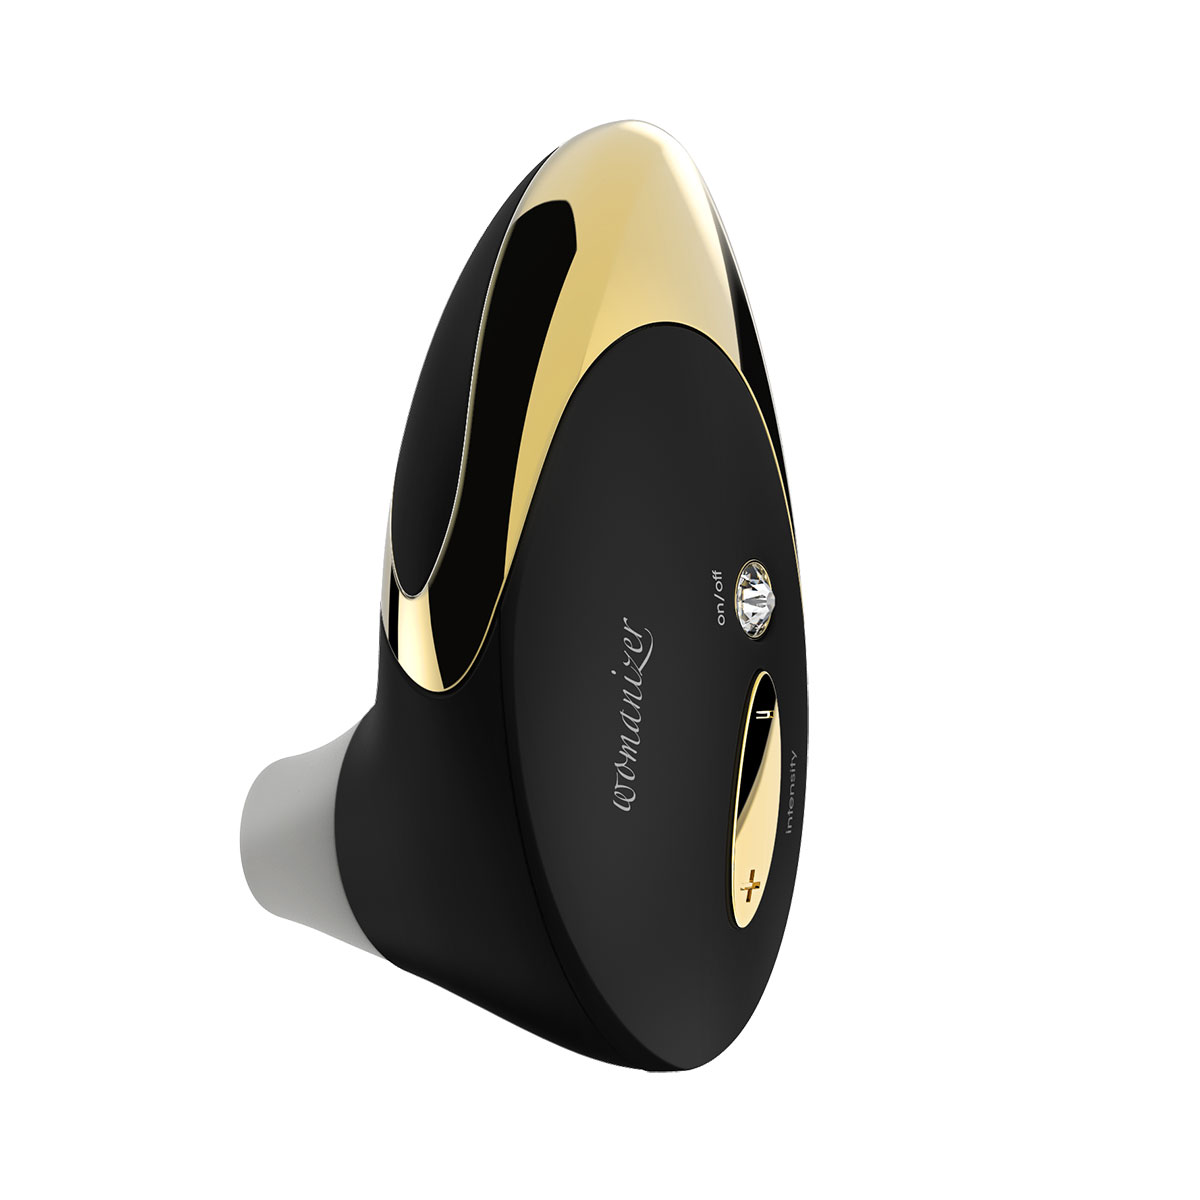 womanizer-deluxe-vibrator-gold-rush-main-1200x1200.jpg